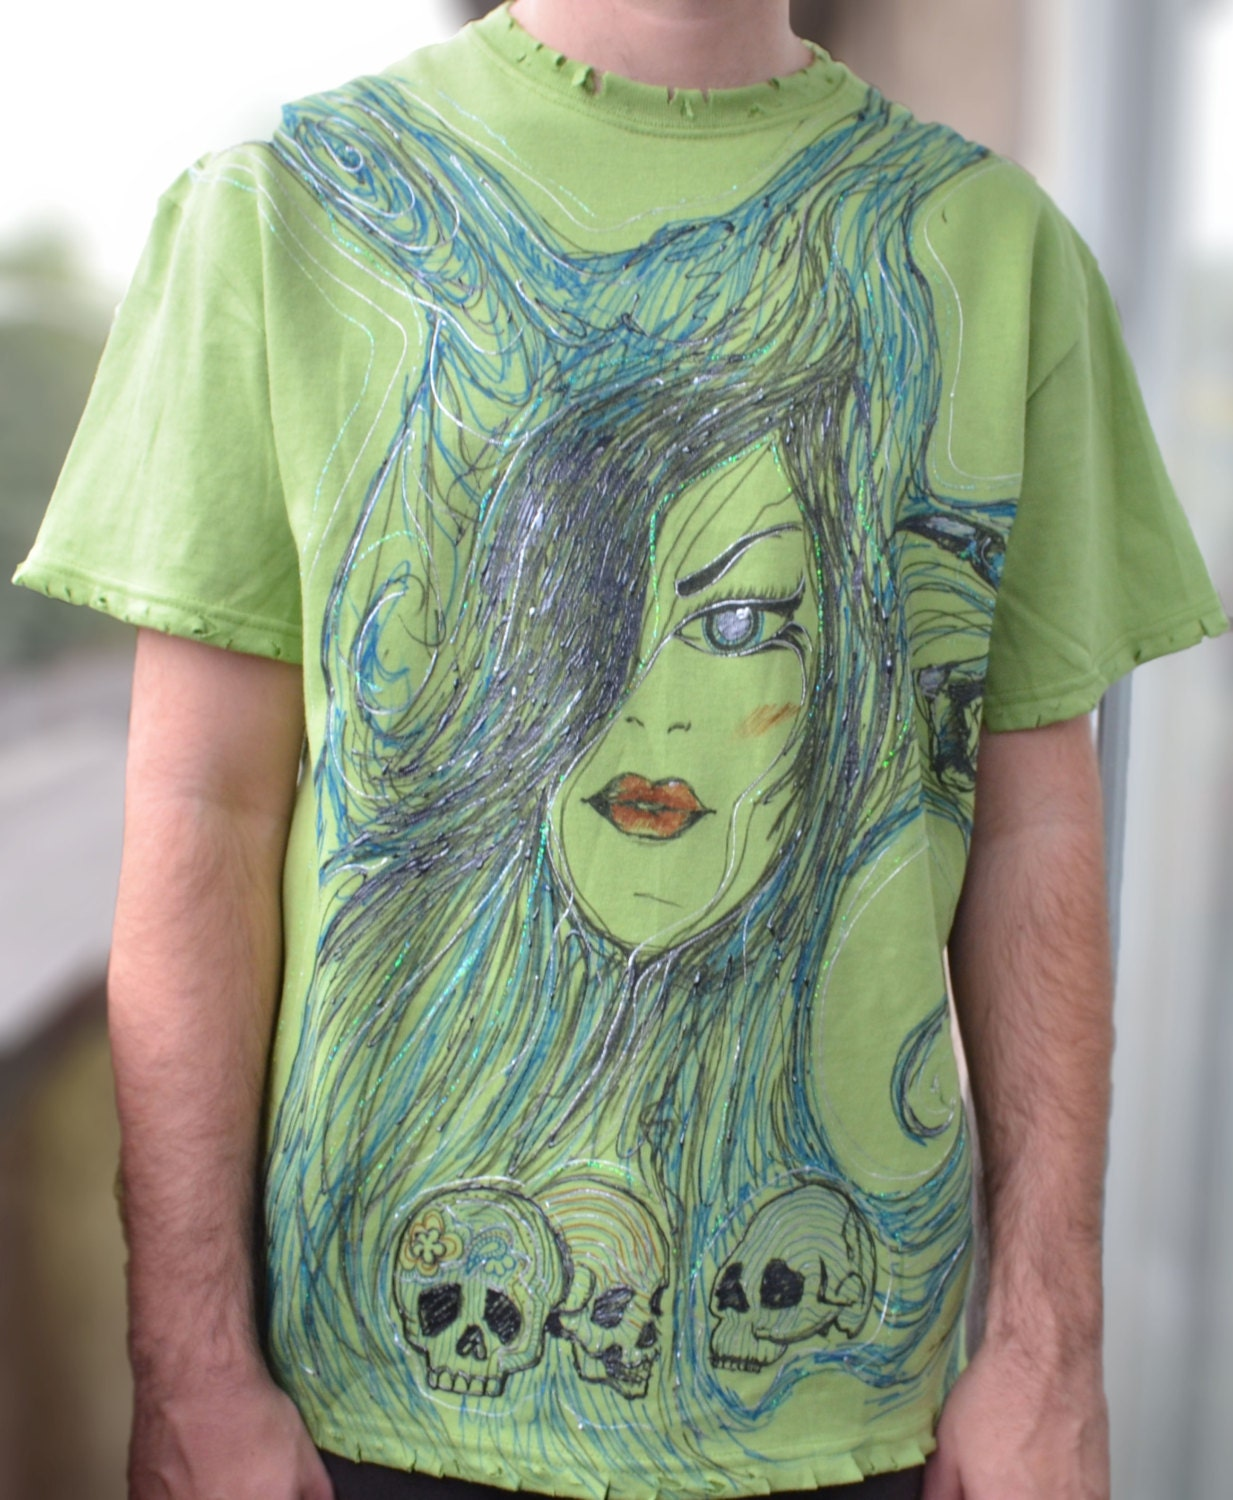 Puffy paint t shirt for him queen of the dead by Puffy paint shirt designs